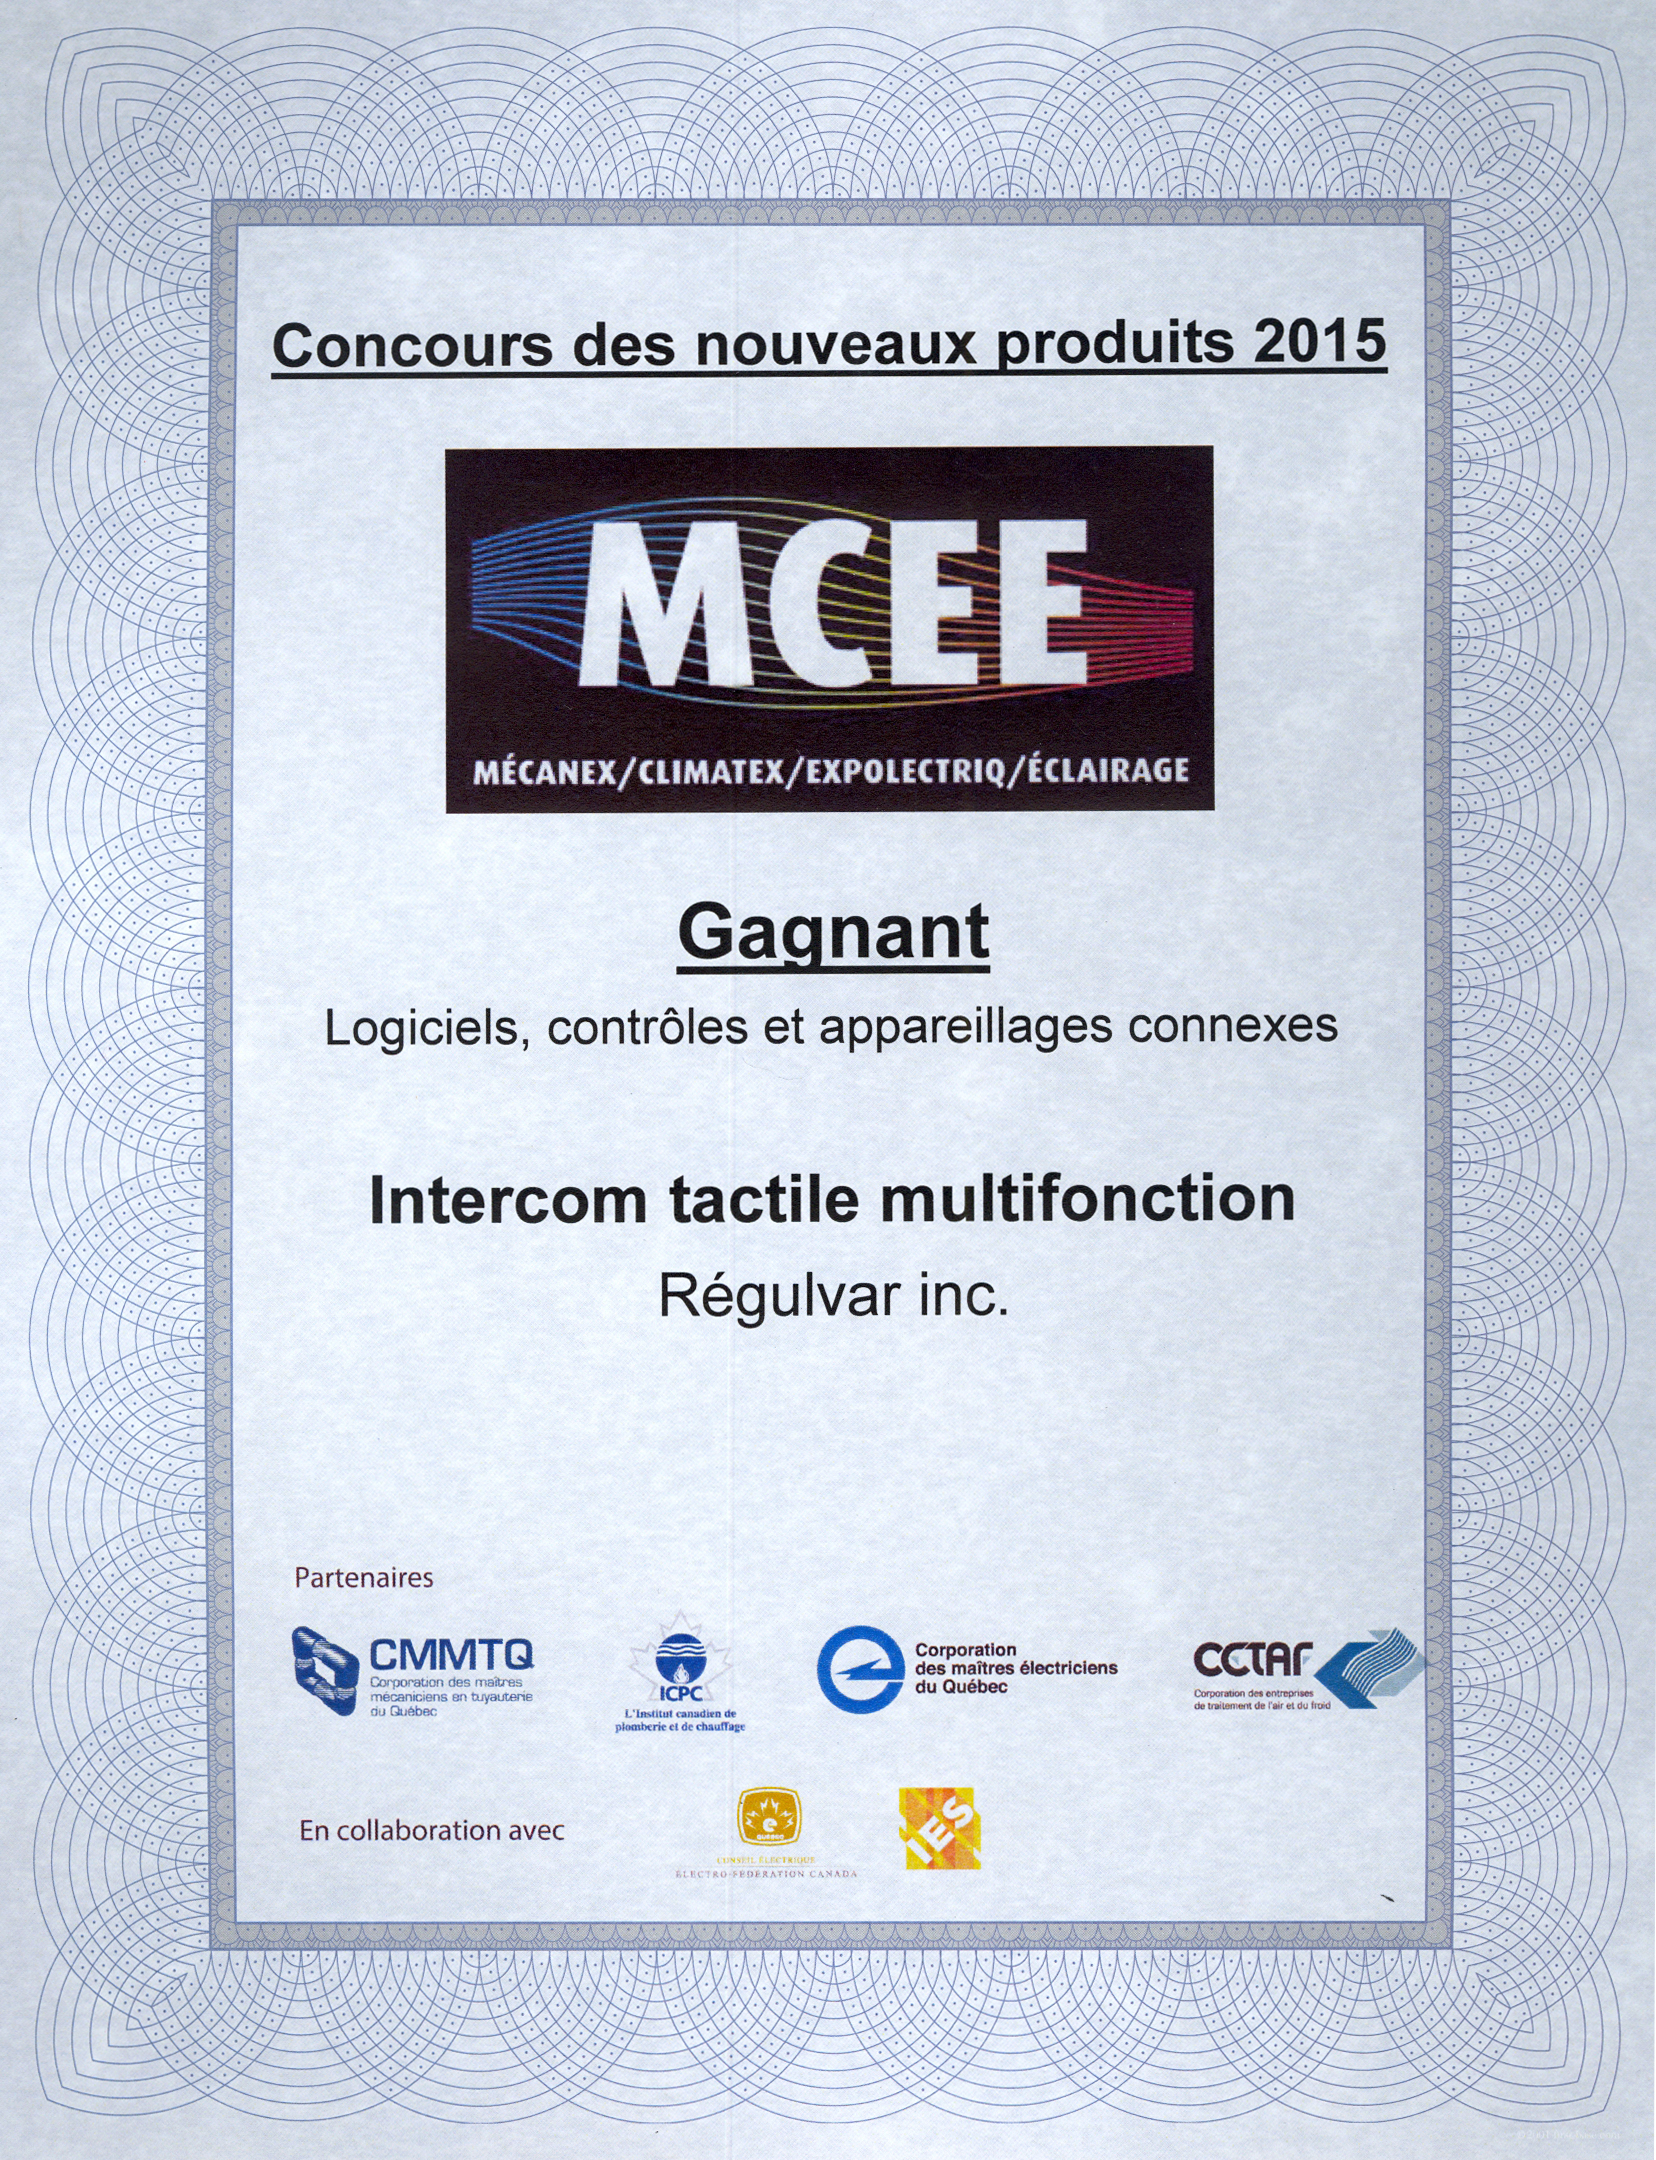 MCEE 2015: A prize for Regulvar's intercom